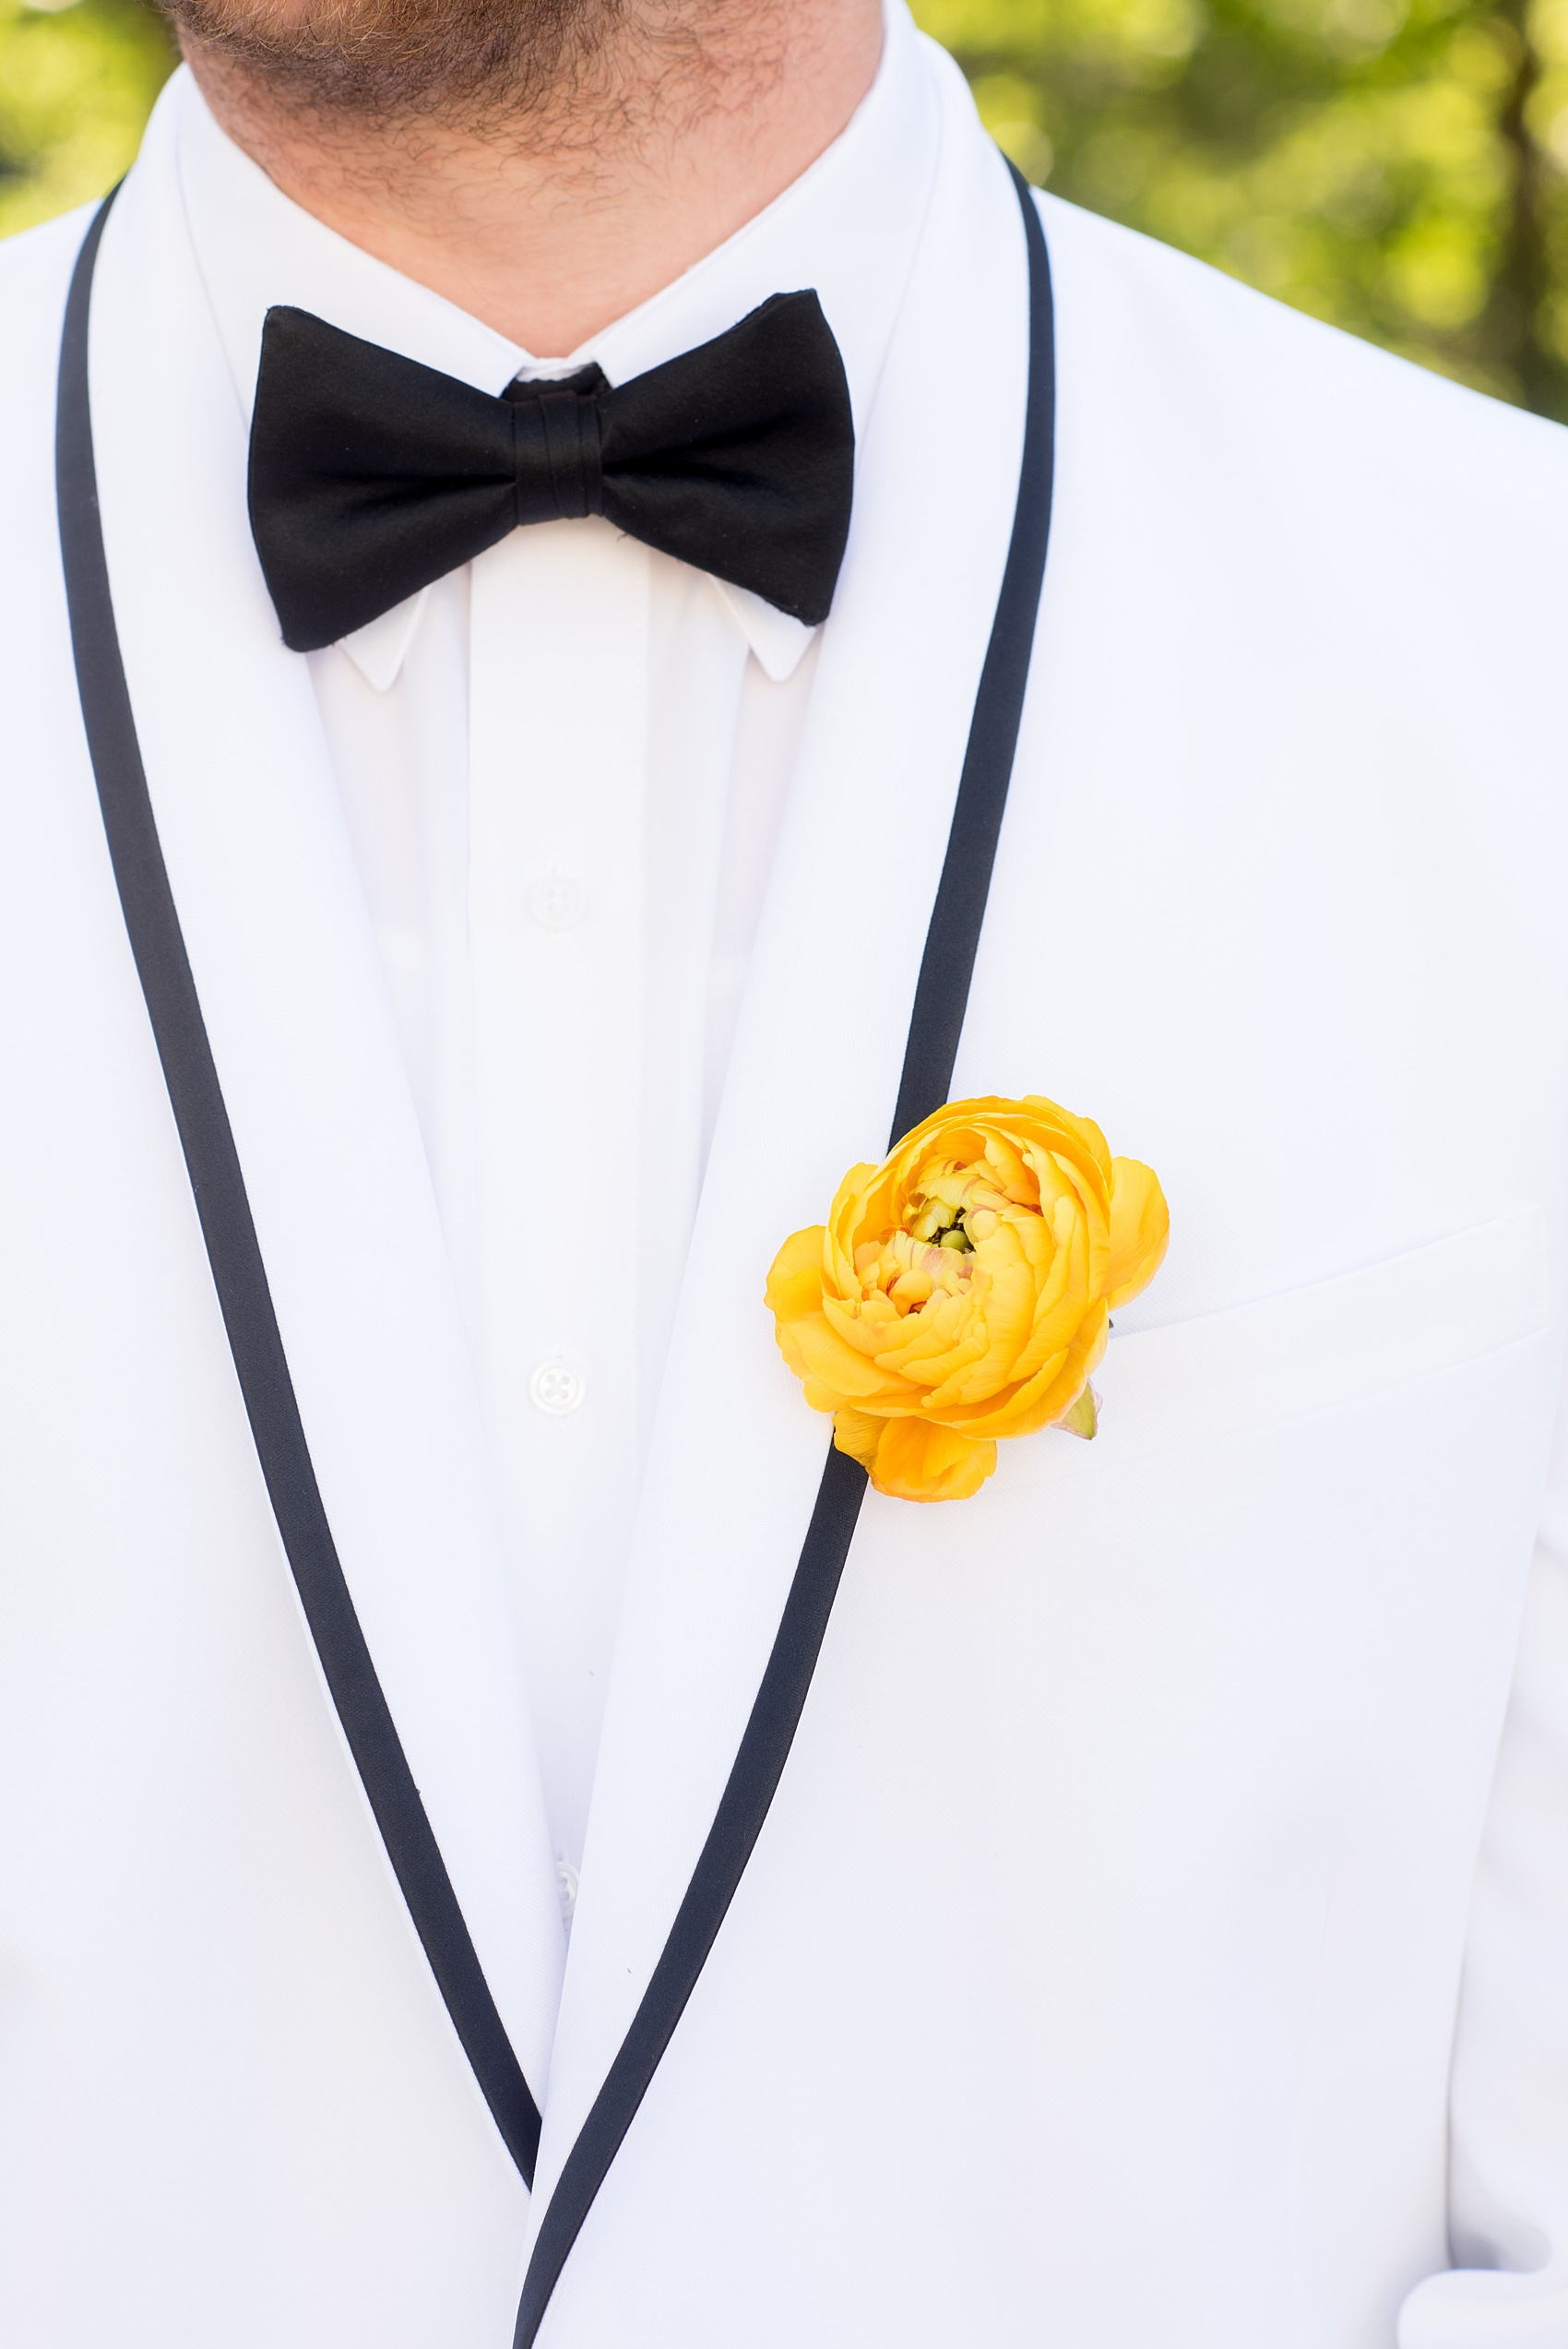 Mikkel Paige Photography wedding photo at The Bradford, NC. Groom in a white tuxedo suite jacket with black edge detail and a yellow ranunculus boutonniere alternative.